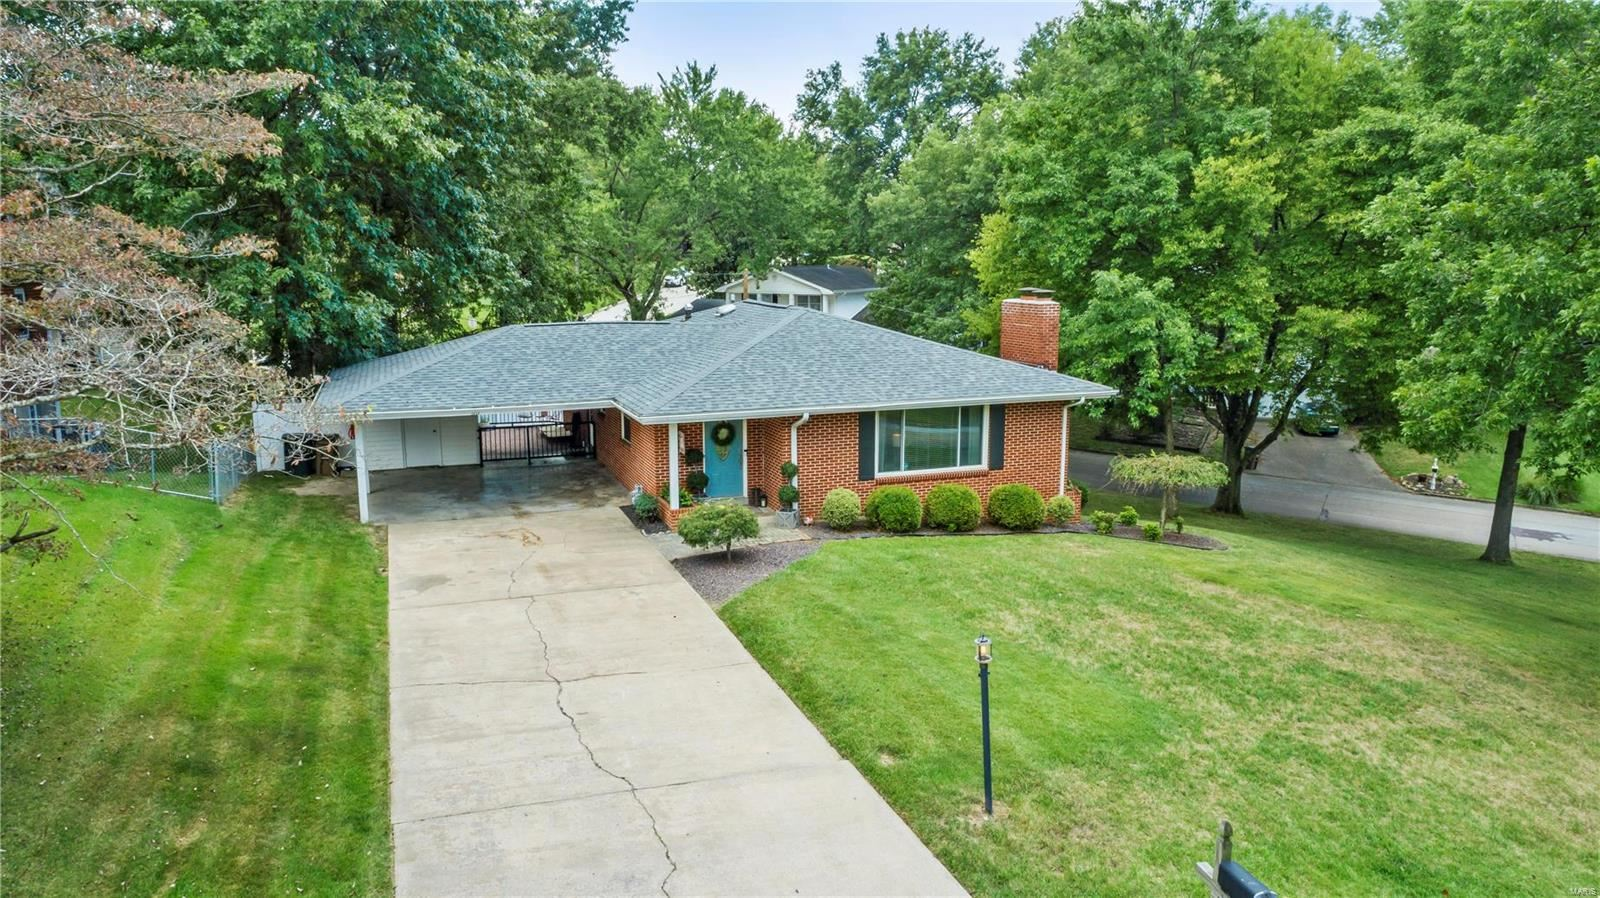 Photo of 1717 Colonial Street, Cape Girardeau, MO 63701 (MLS # 21066831)